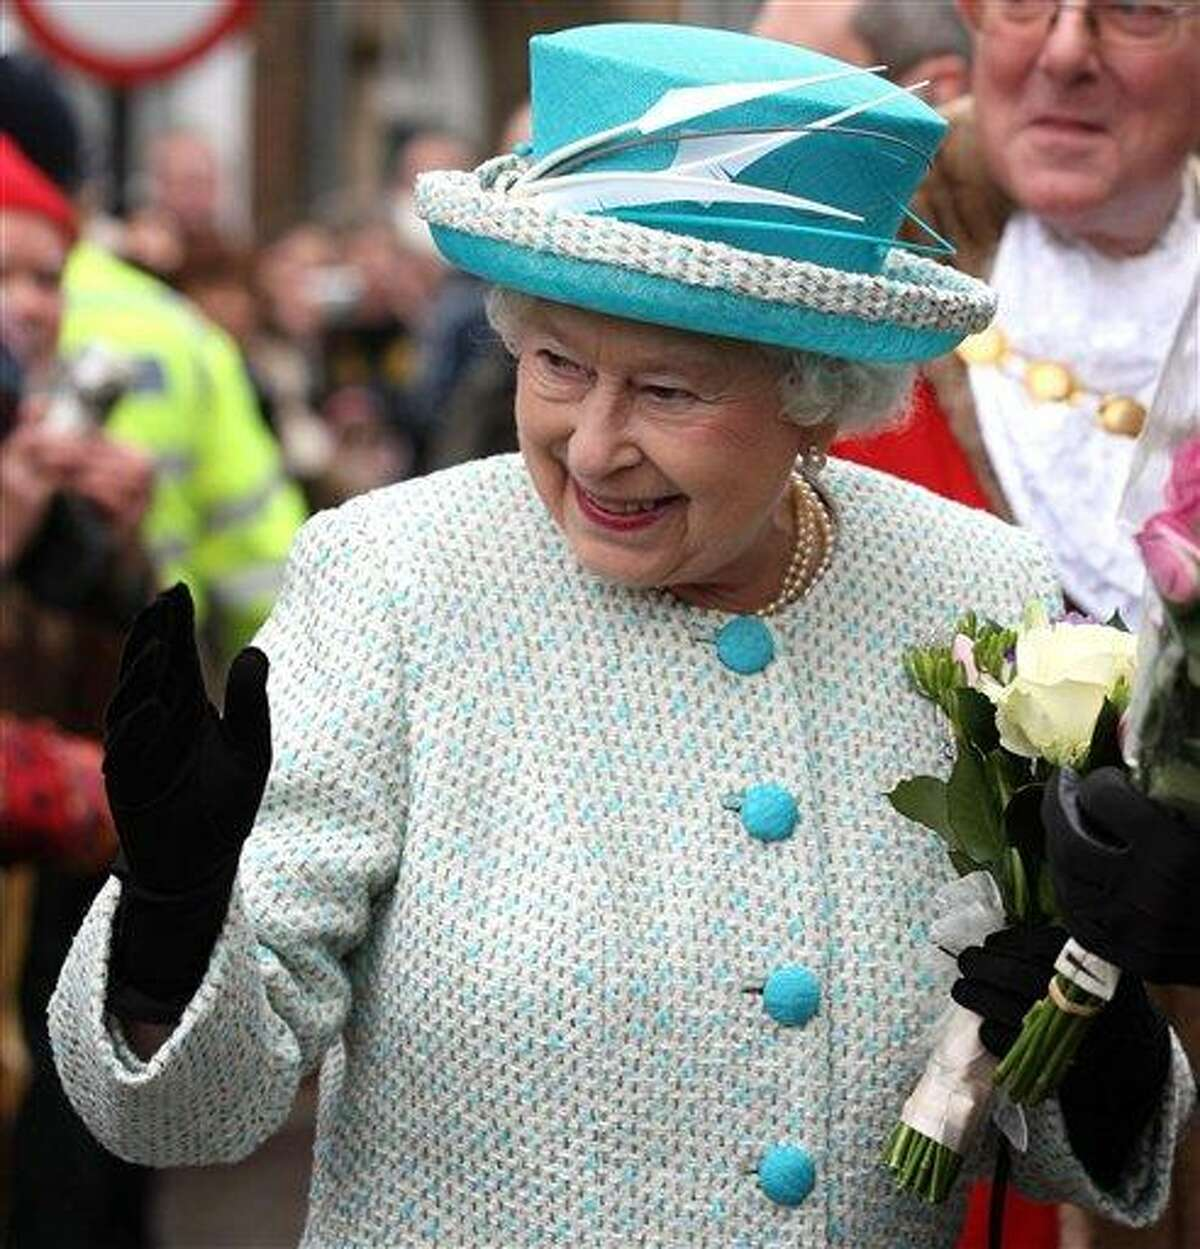 Britain's Queen Elizabeth II, waves to well-wishers during a visit to Kings Lynn Town Hall in eastern England Monday. Associated Press